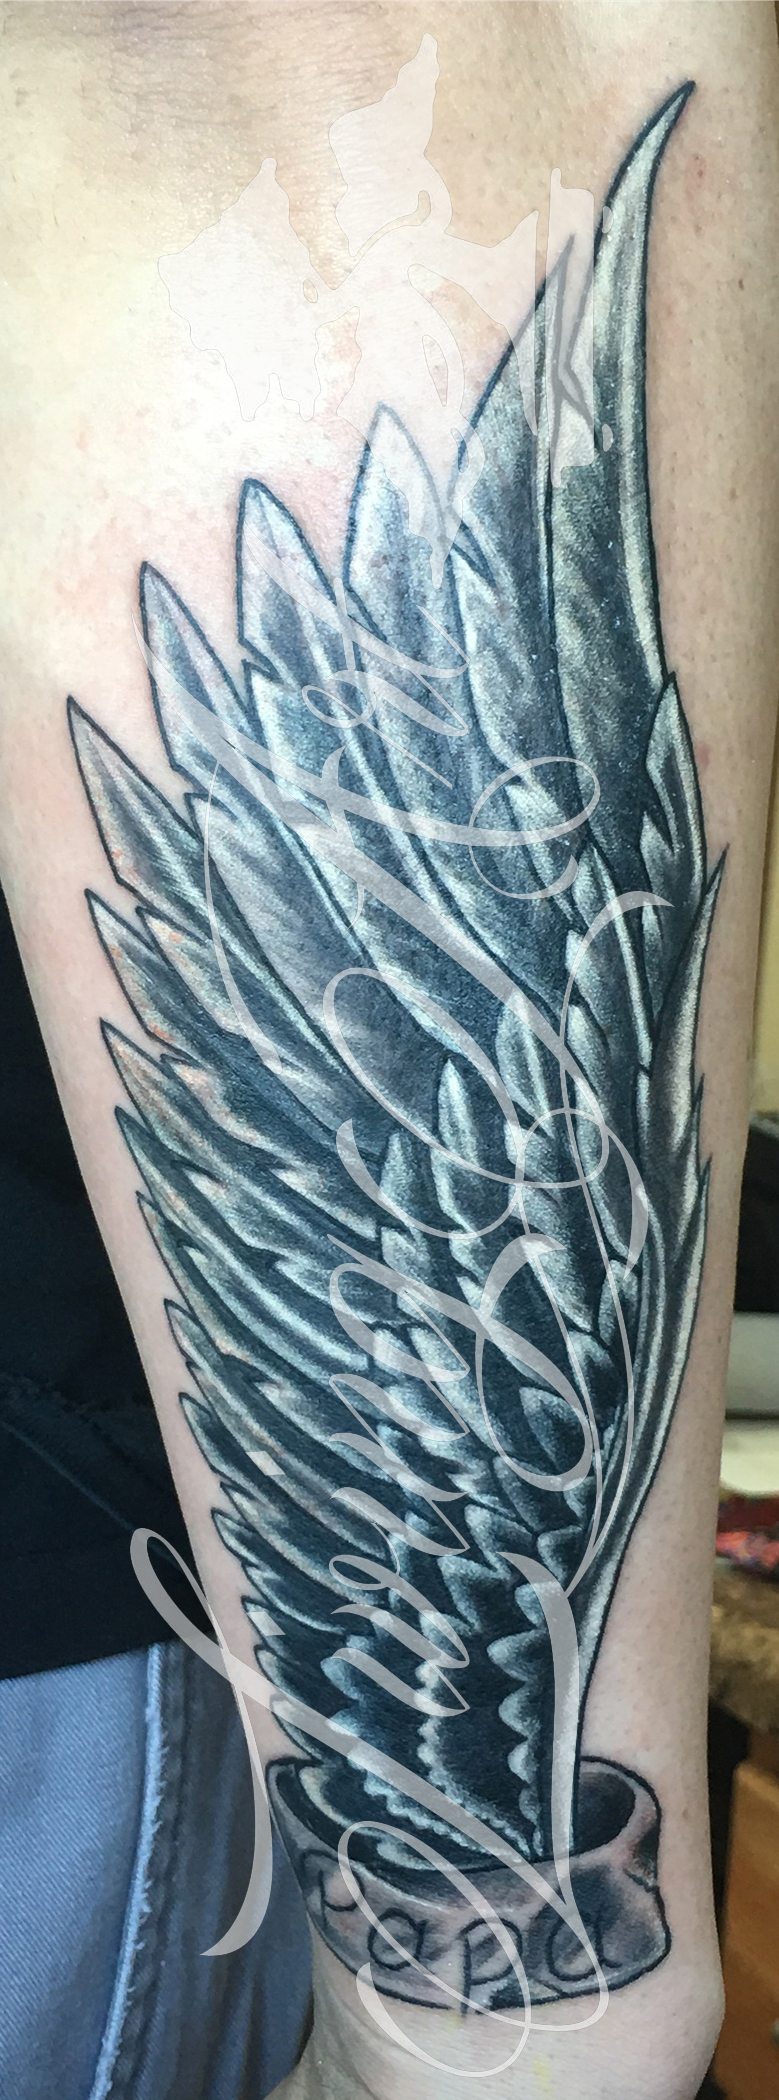 josh kirkpatrick tattoo_wing tattoo copy.jpg